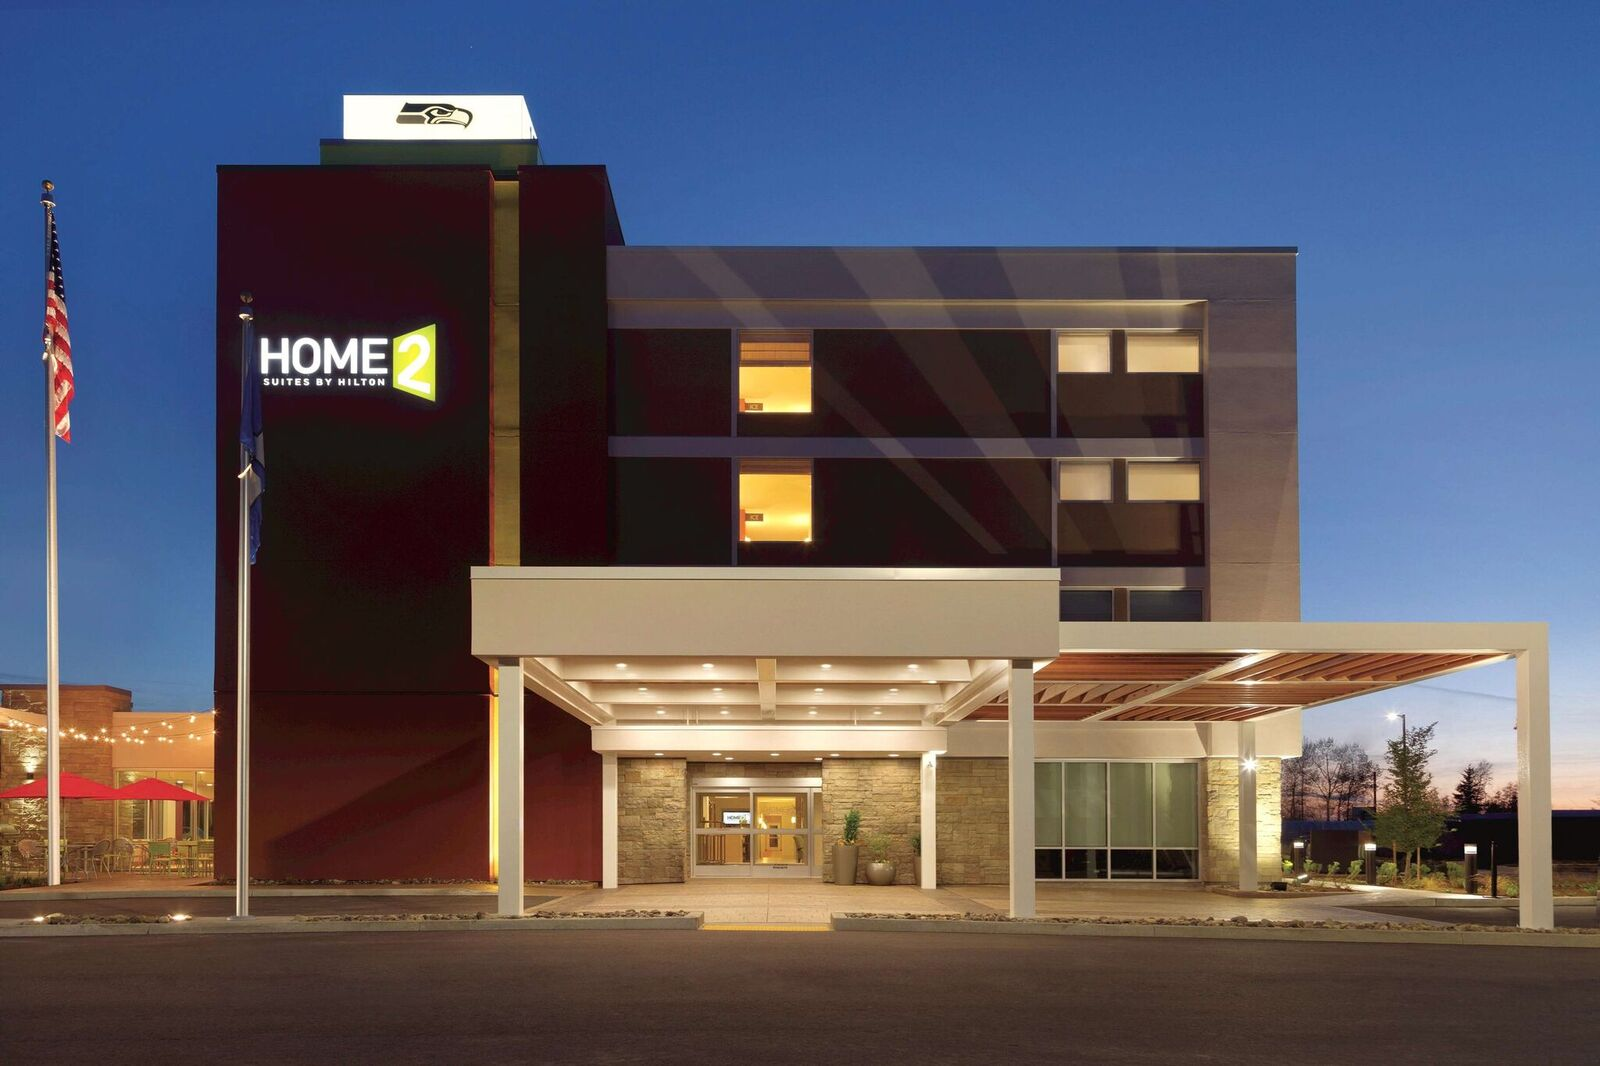 Home2 Hotel managed by Erck Hotels